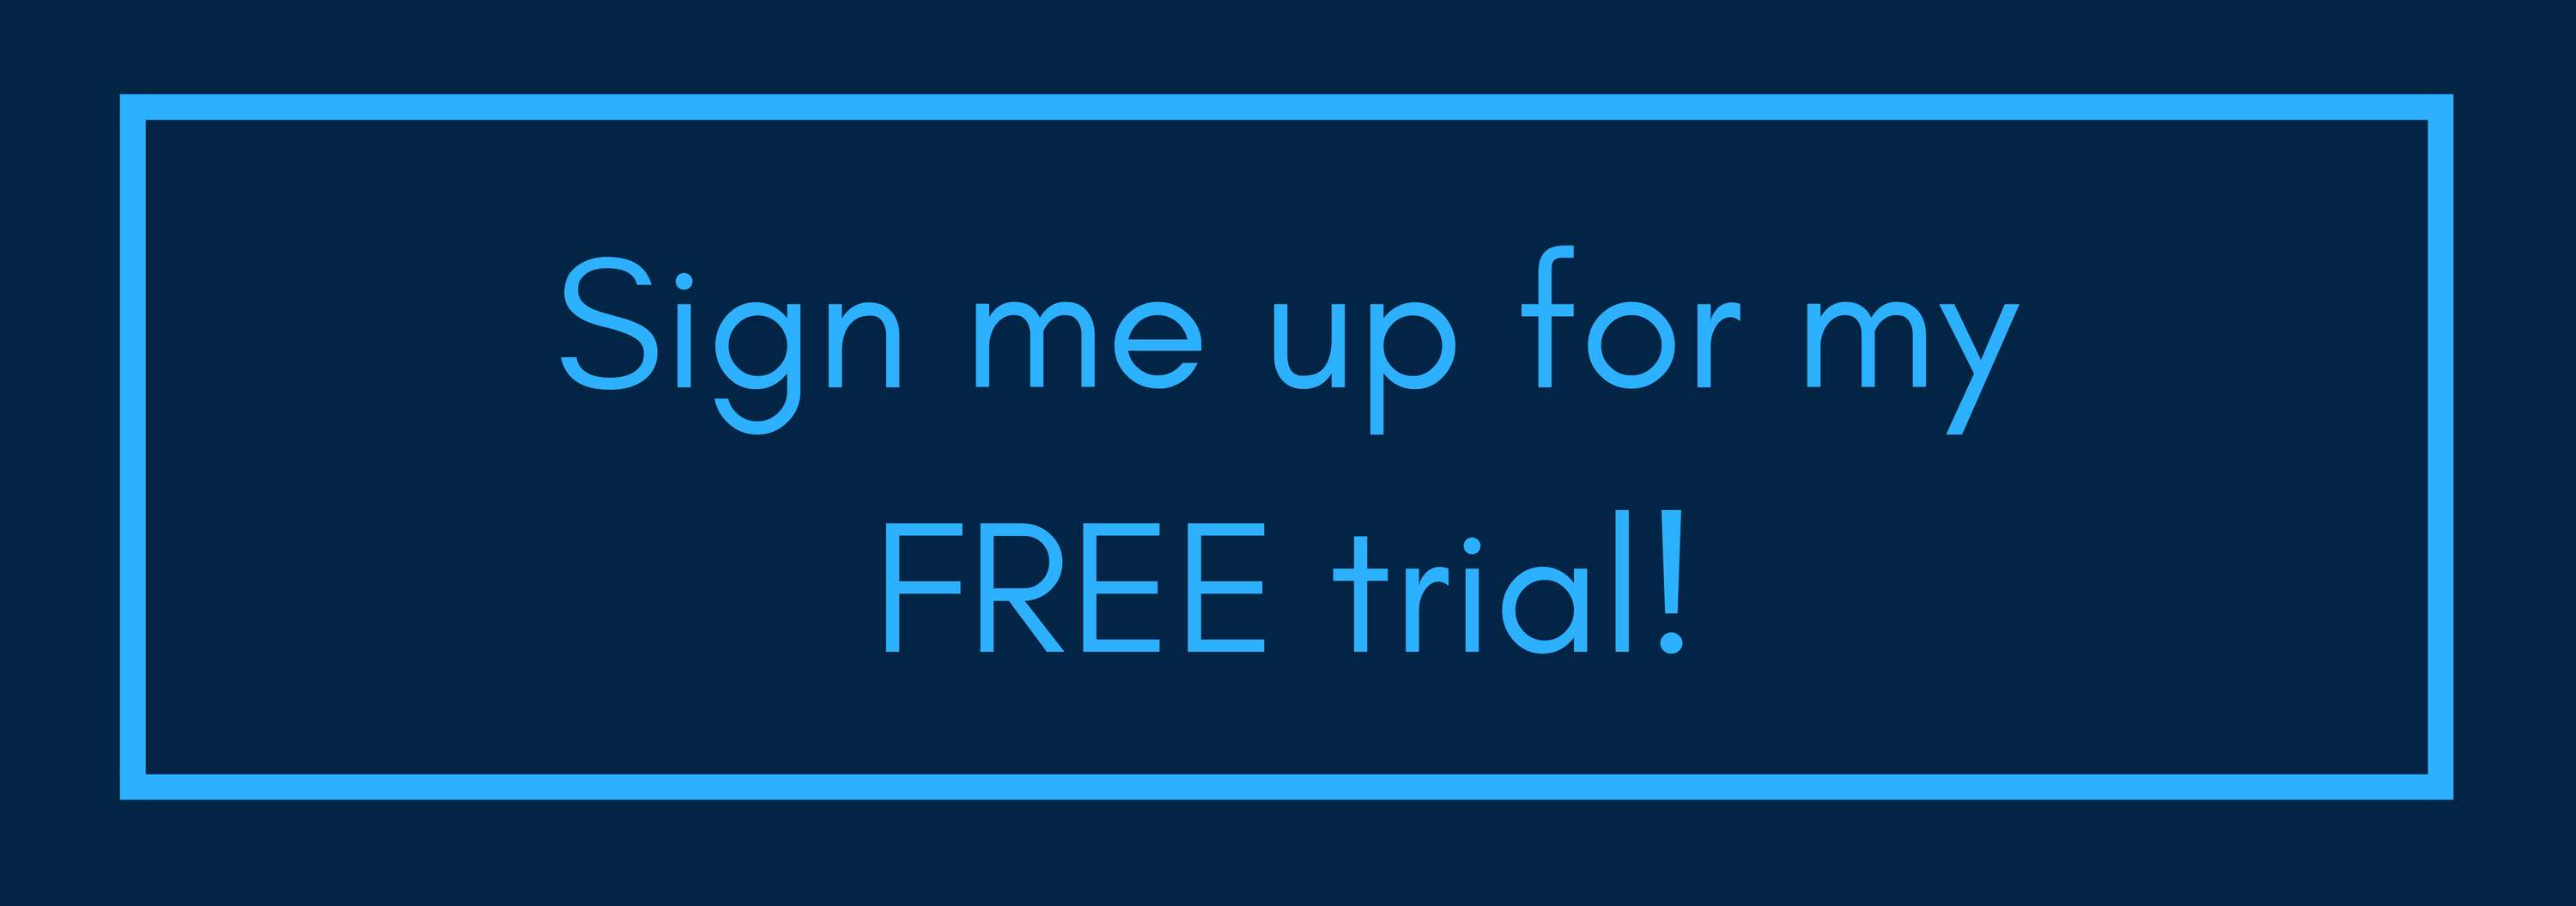 SIgn up FREE TRIAL